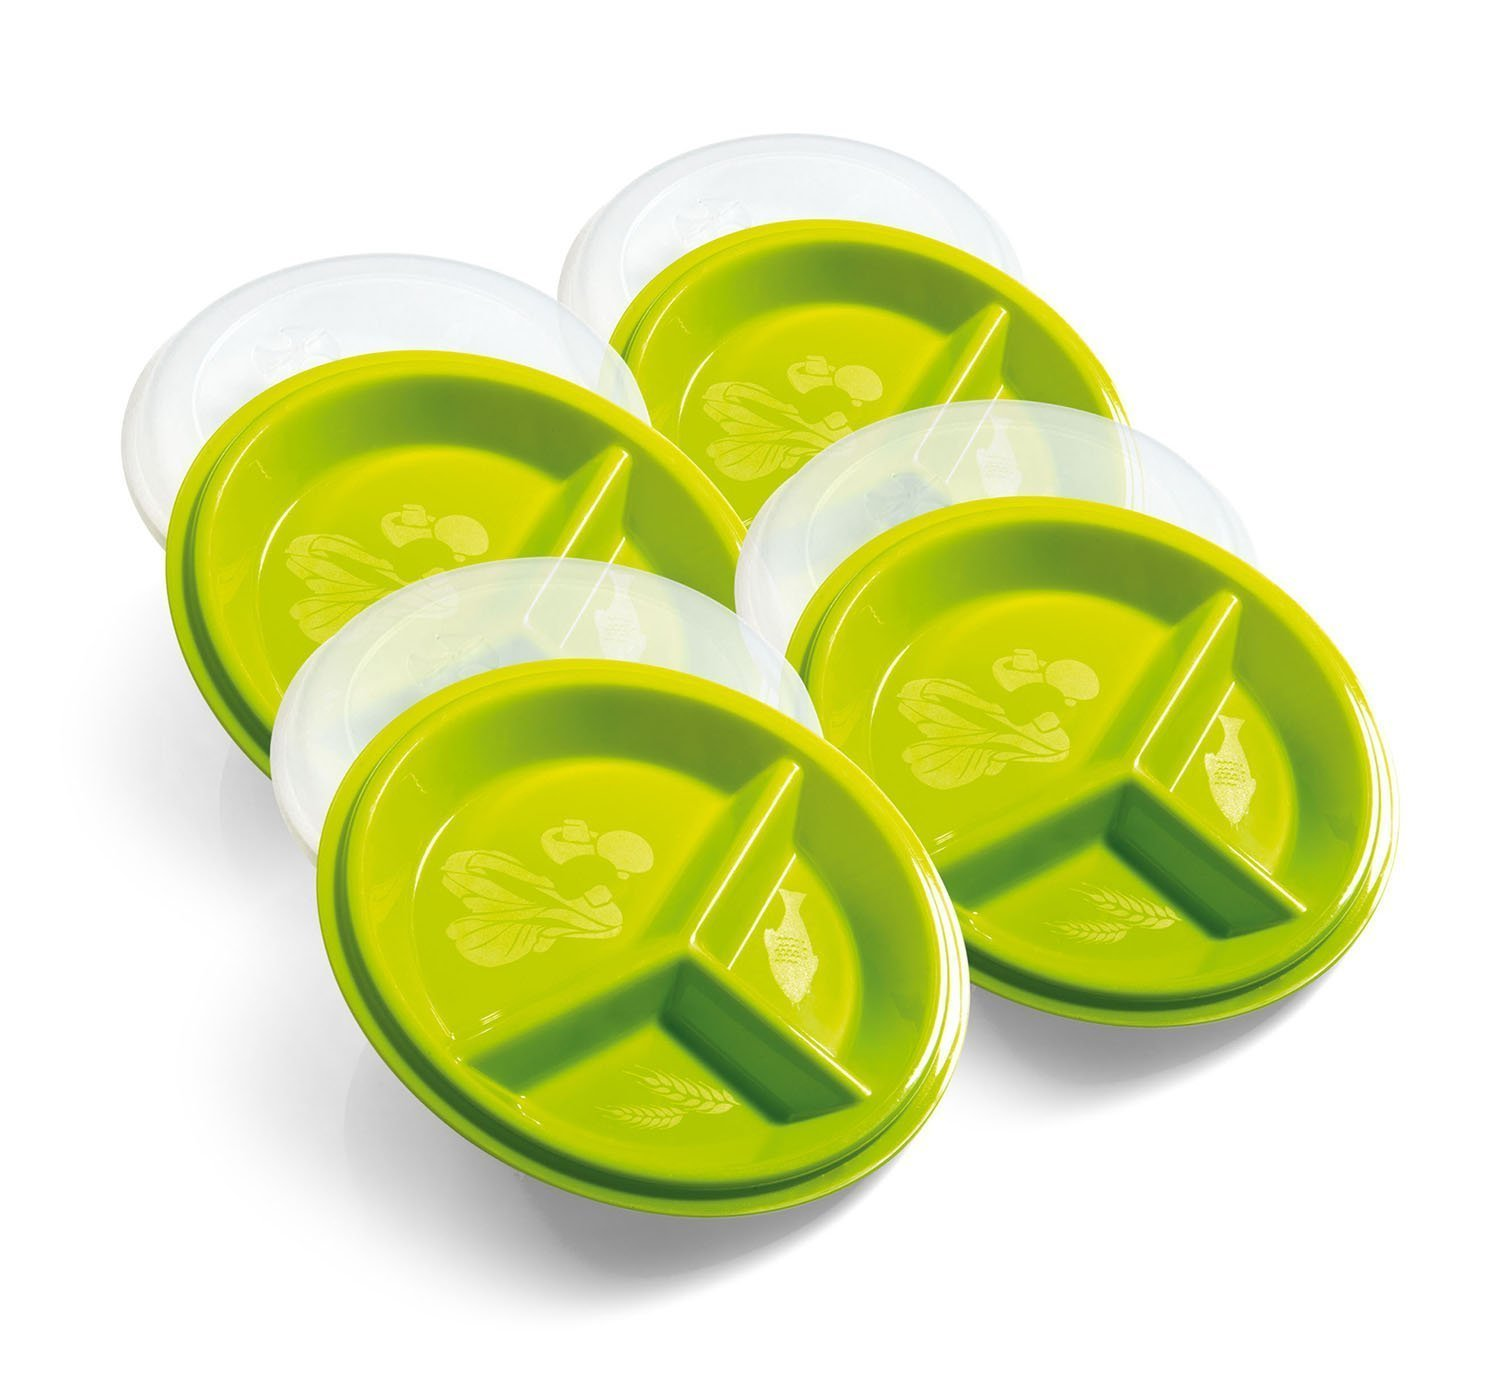 Precise Portions 4-Go Healthy Portion Control Plates - Pack of 4, 3-Section Plate with Leak-Proof Lids, Dishwasher & Microwave Safe, Helps Manage & Lose Weight, Metabolism & Blood Sugar